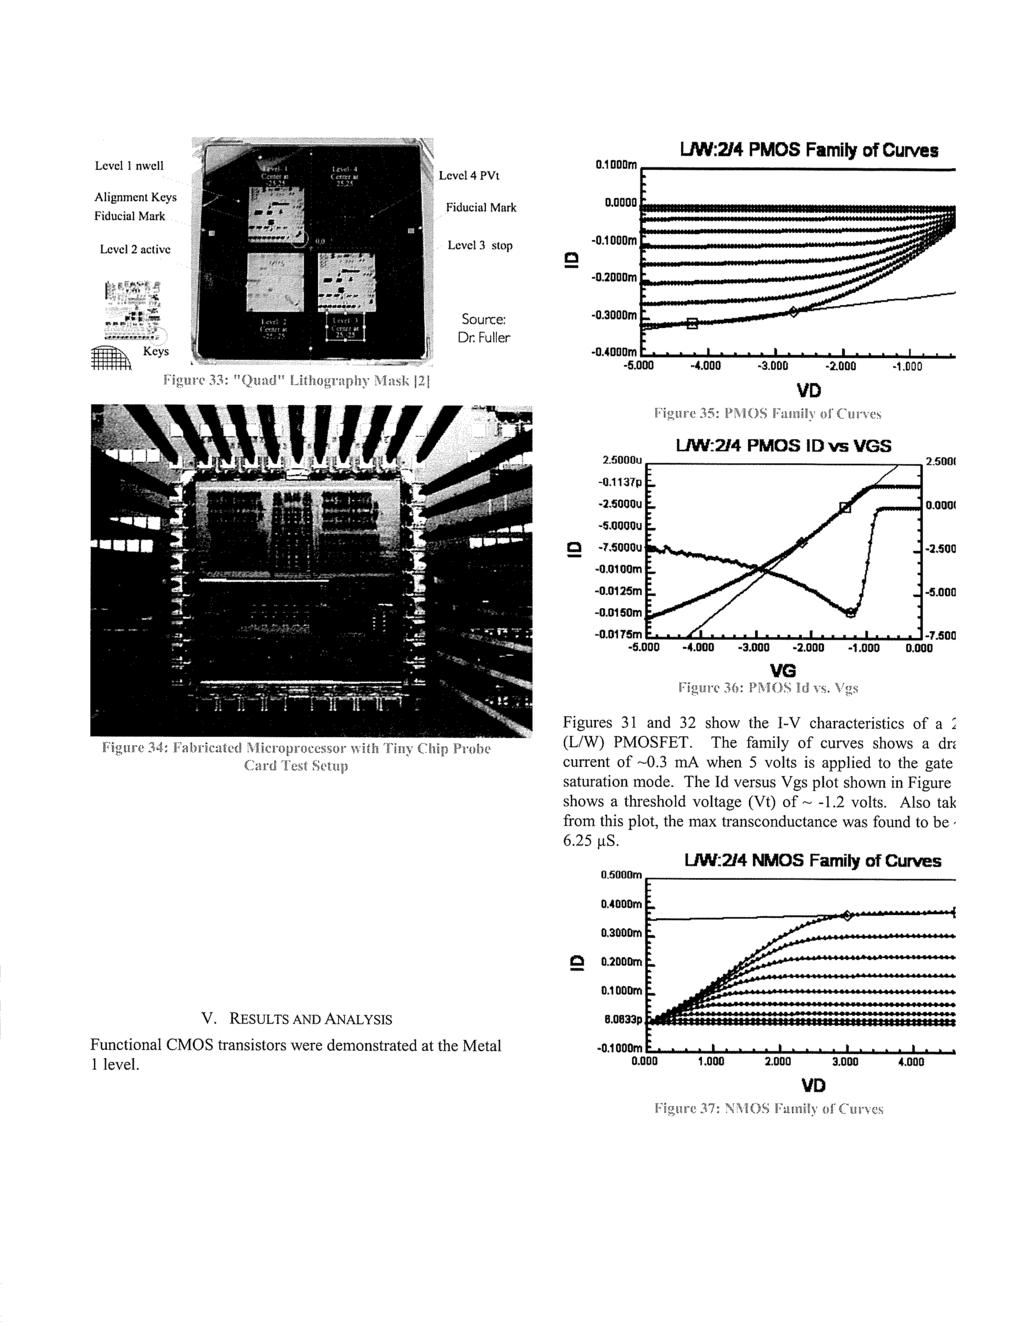 4 Bit Microprocessor Design Simulation Fabrication And Testing Pdf Alphanet Experiment 12 The Full Adder Level I Nwell Alignment Keys Fiducial Mark Lcvel4pvt Ljw214 Pmos Family Of